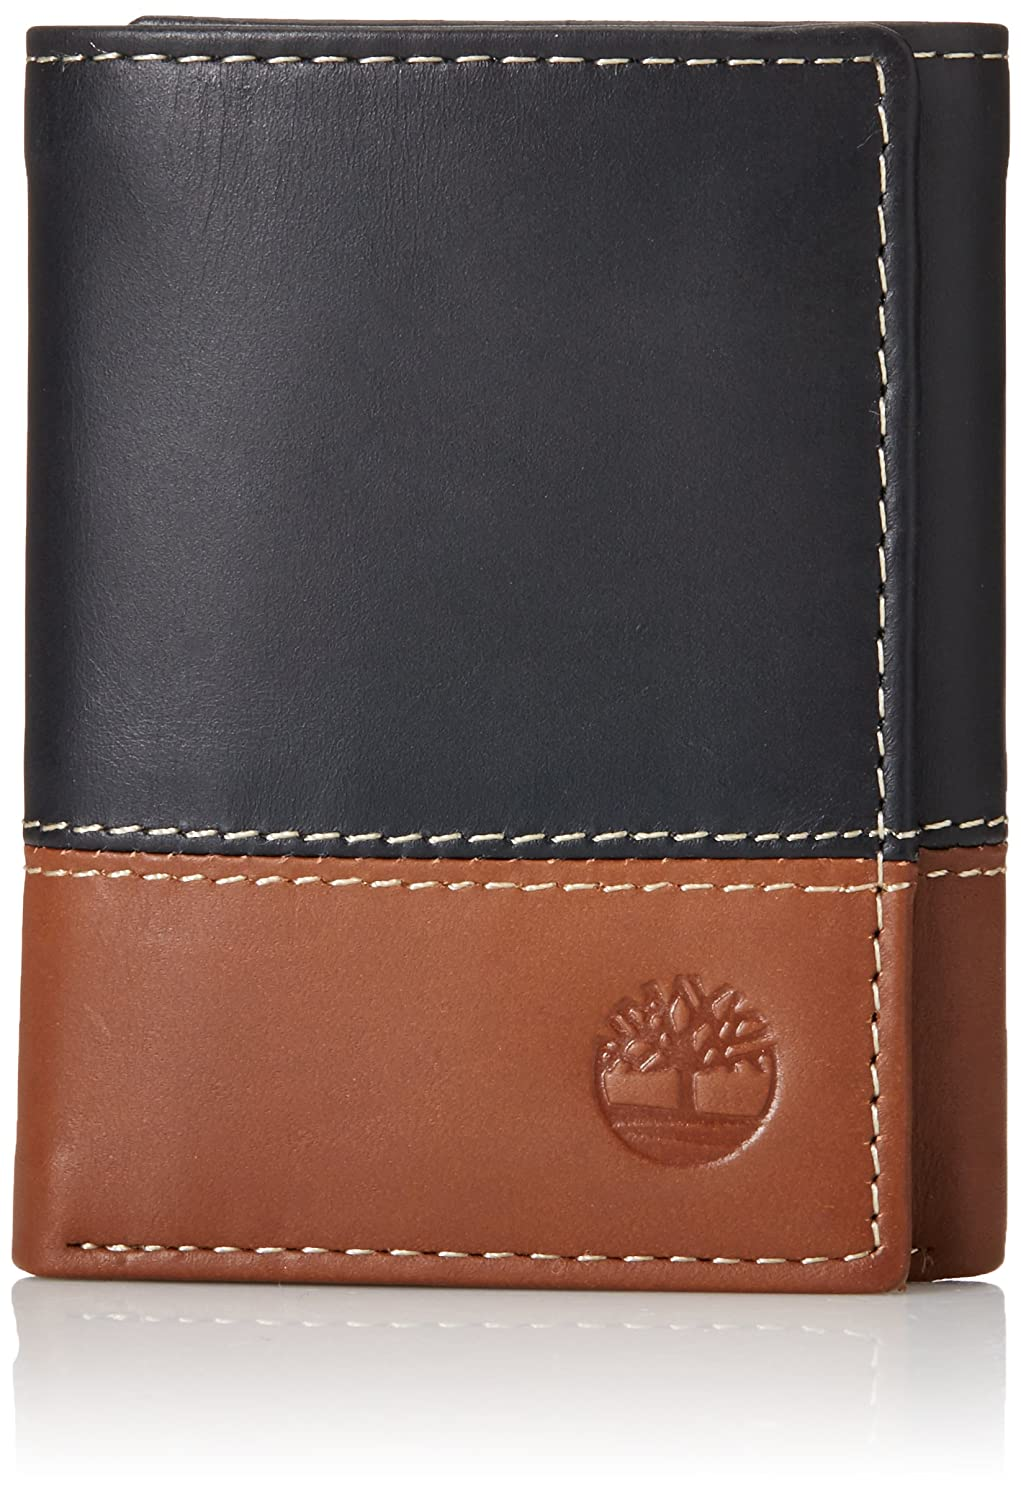 Timberland Men s Hunter Colorblocked Trifold Wallet, Black Brown, One Size   Amazon.in  Bags, Wallets   Luggage 2c0ffee7a40